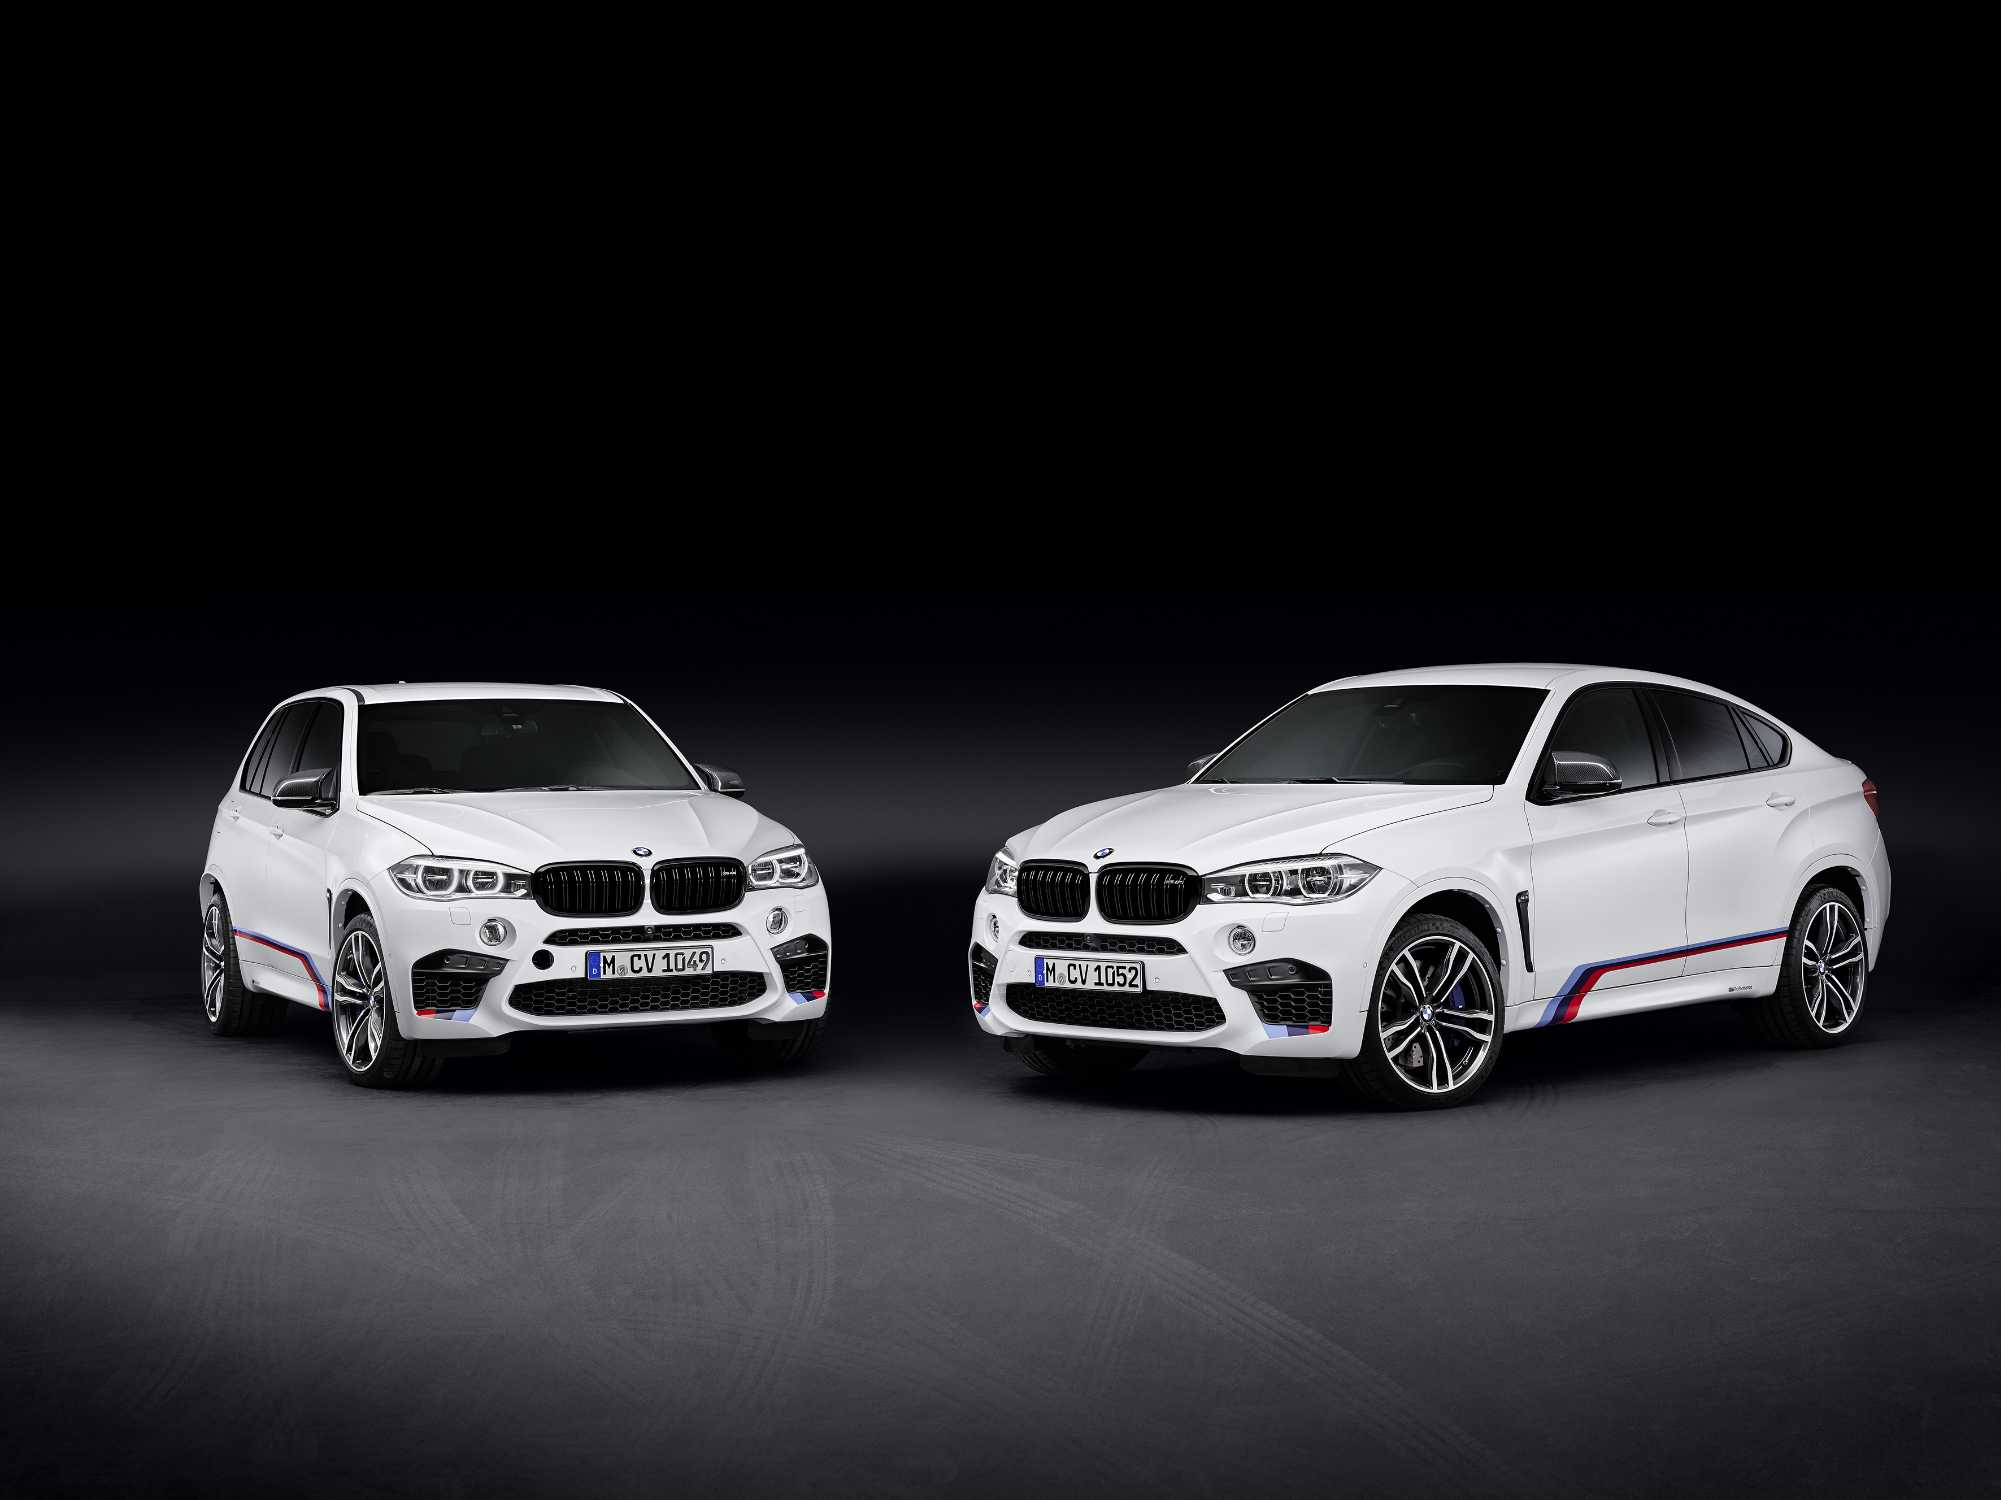 bmw m performance zubeh r f r den bmw x5 m und bmw x6 m. Black Bedroom Furniture Sets. Home Design Ideas